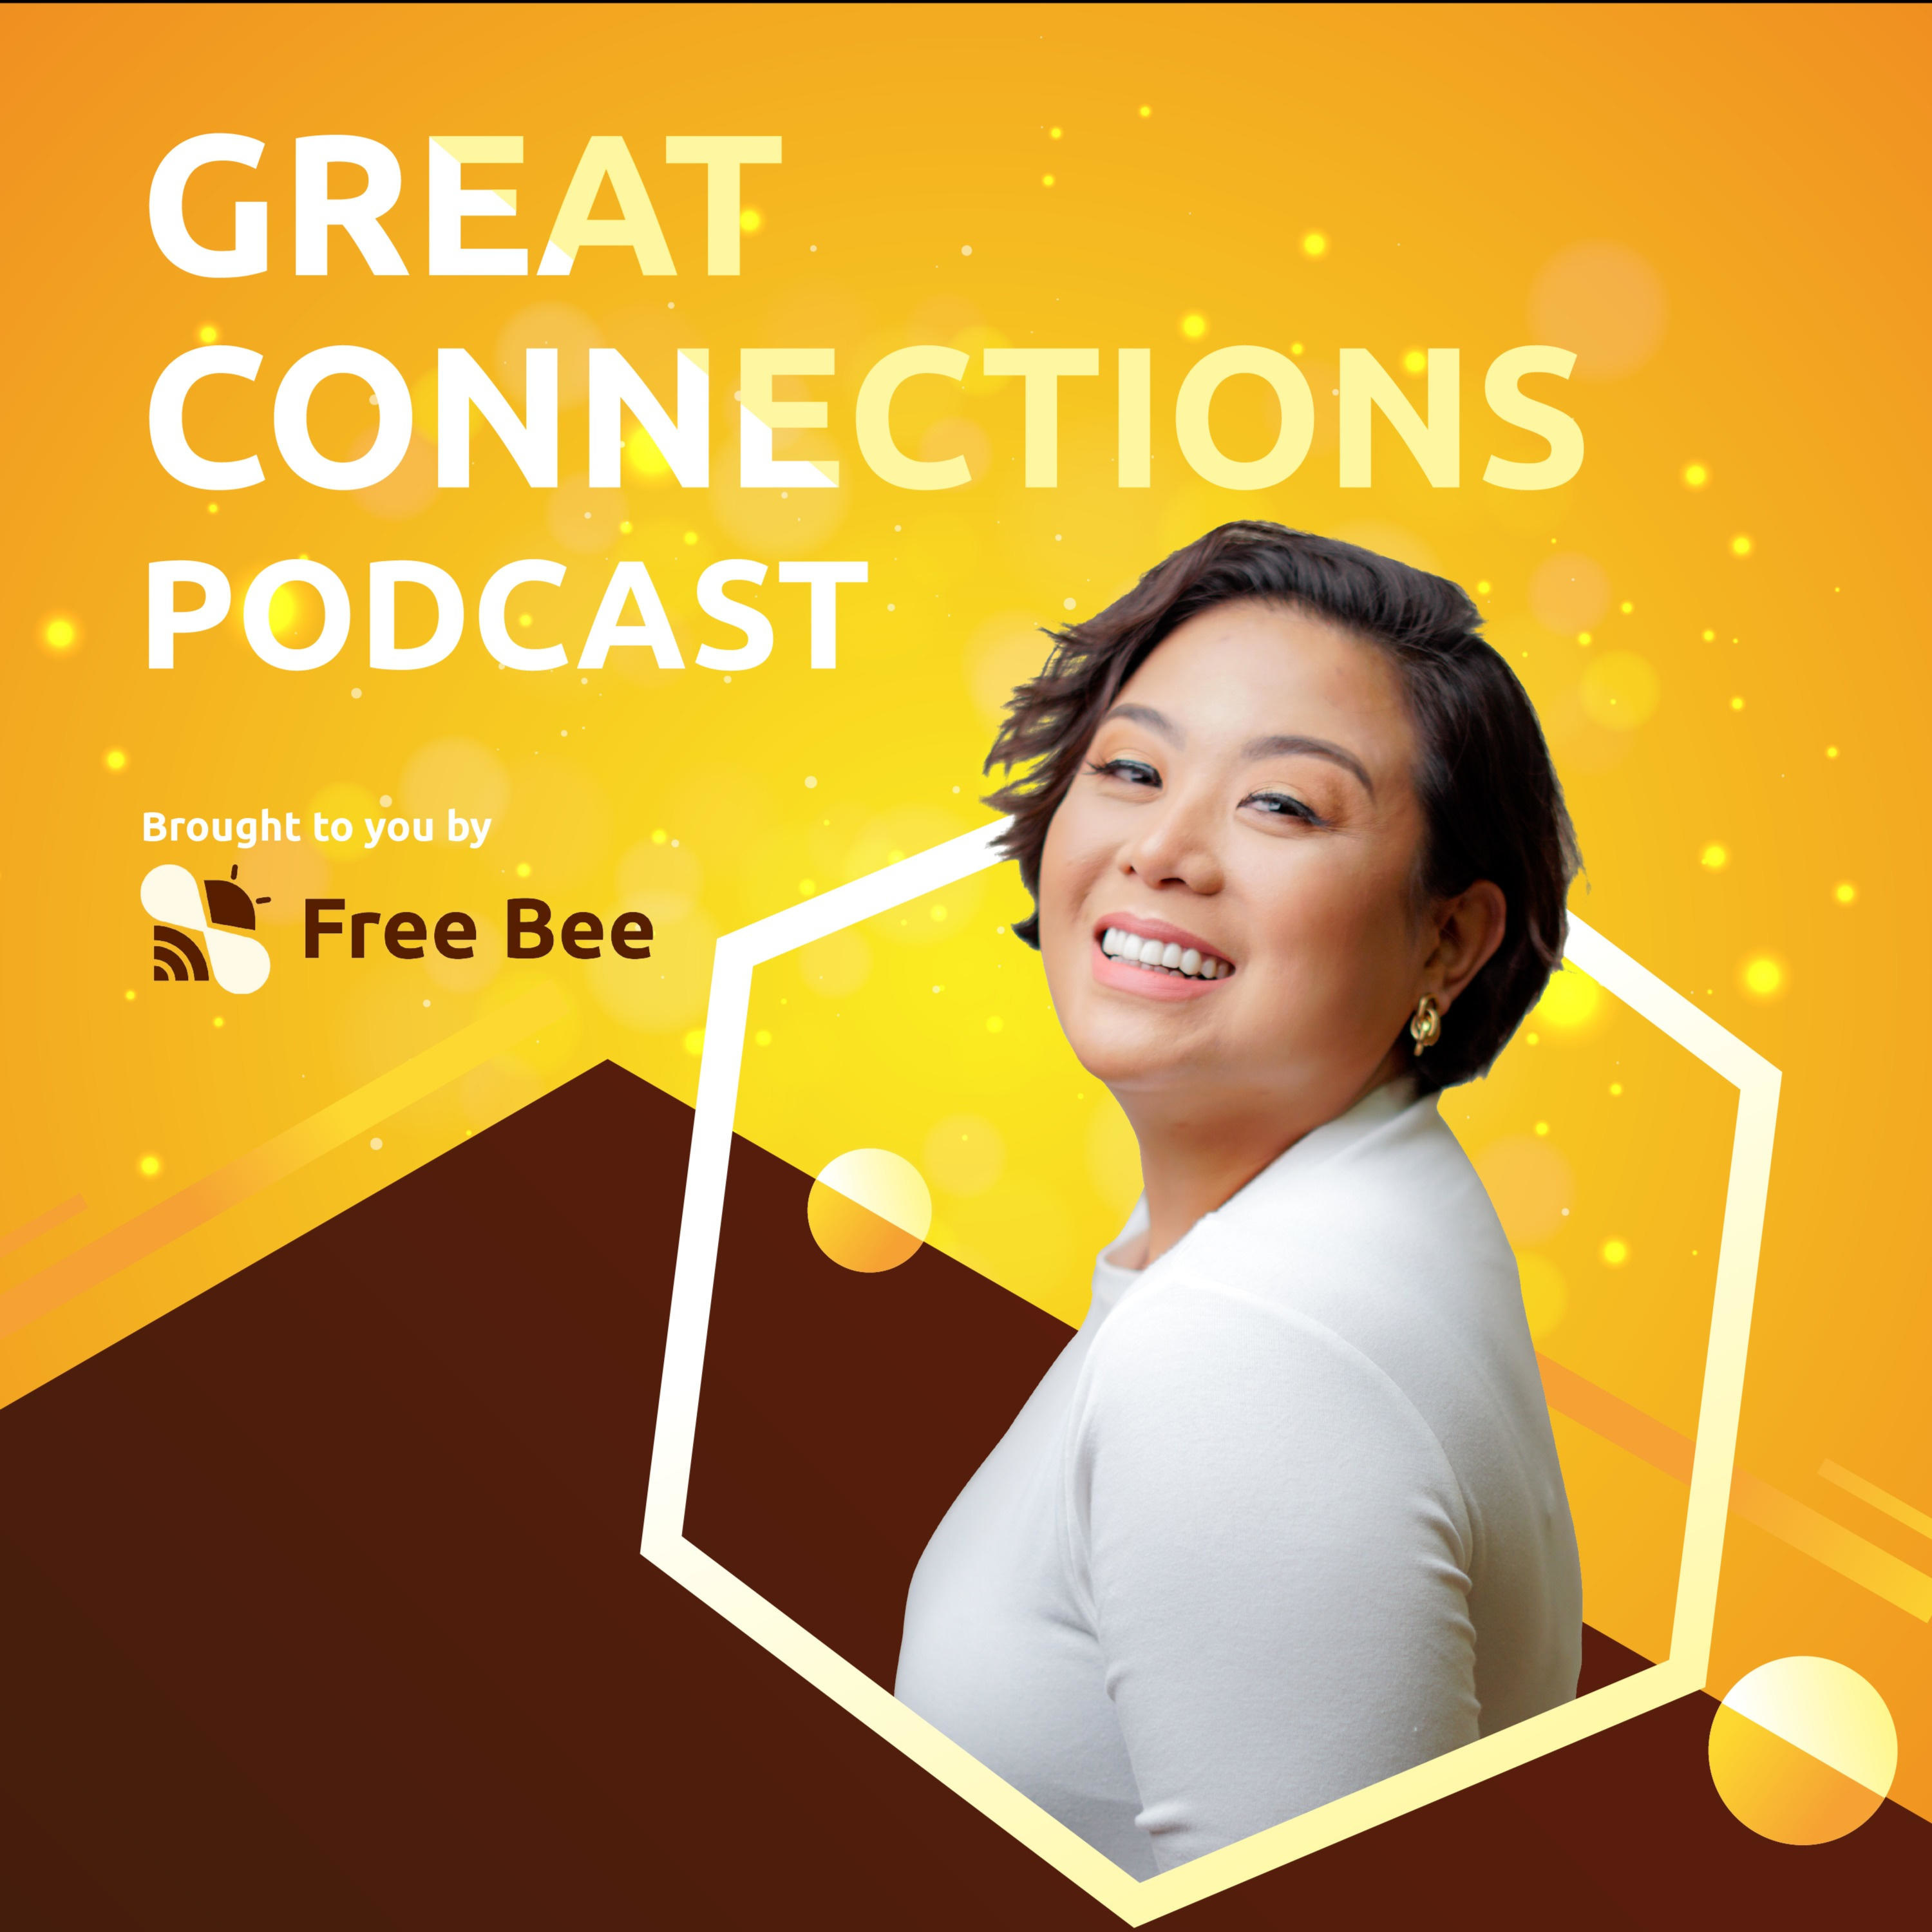 Great Connections Podcast